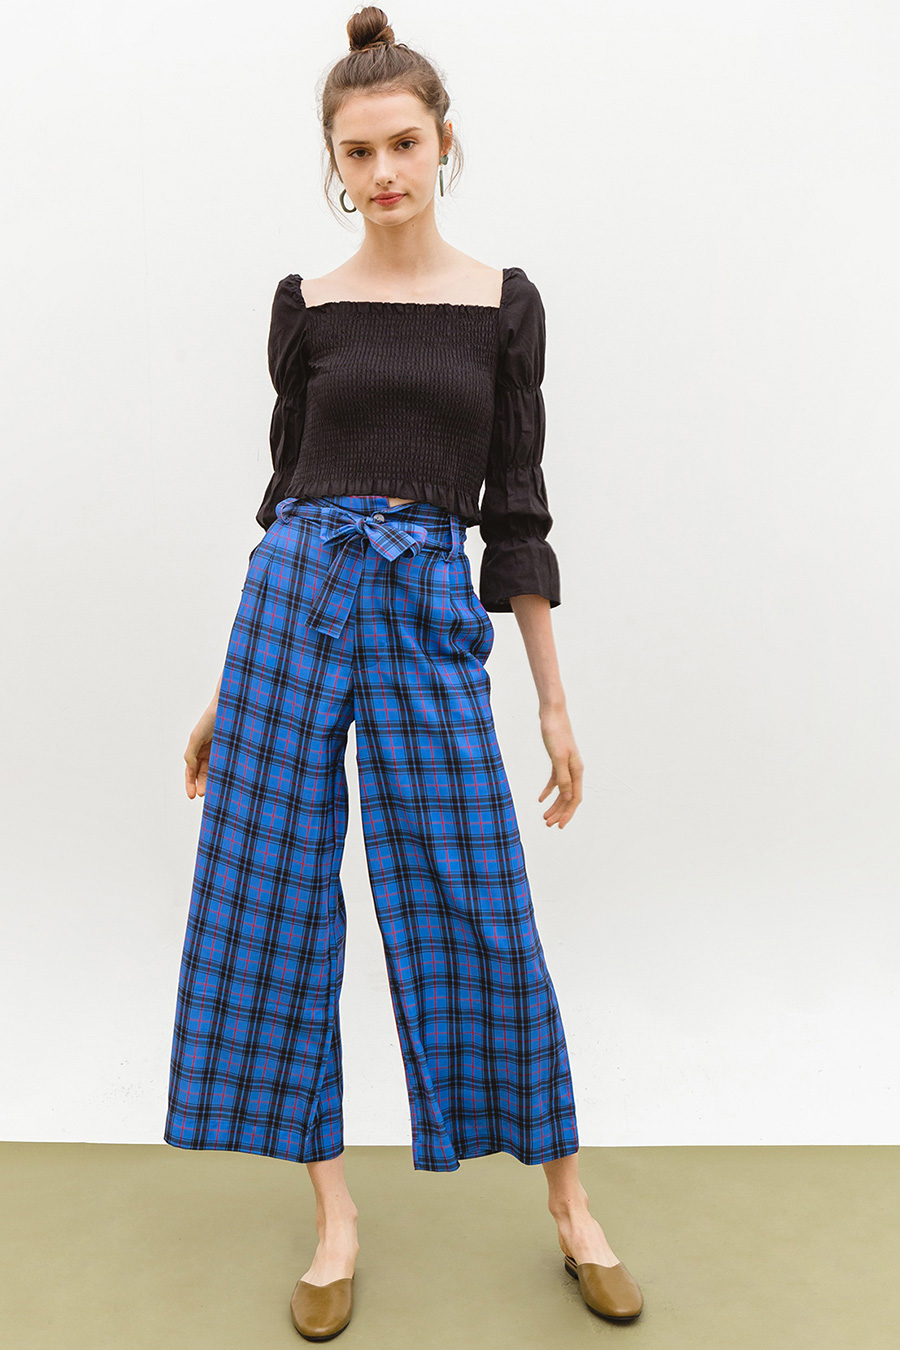 CHALETTE PANTS - MALIBU CHECKS